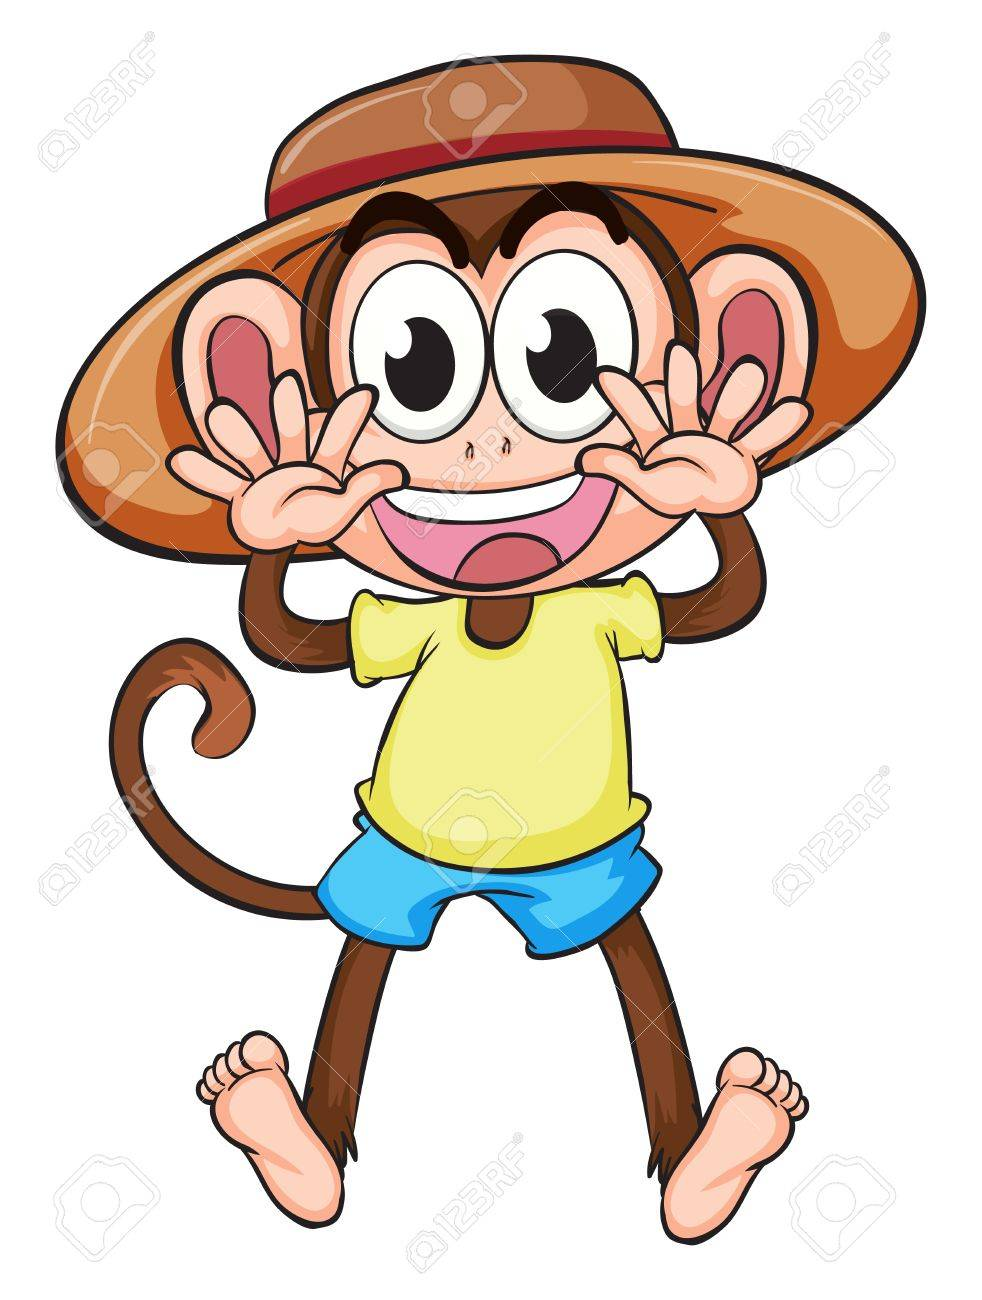 Illustration of a monkey wearing a hat on a white background Stock Vector - 16969742